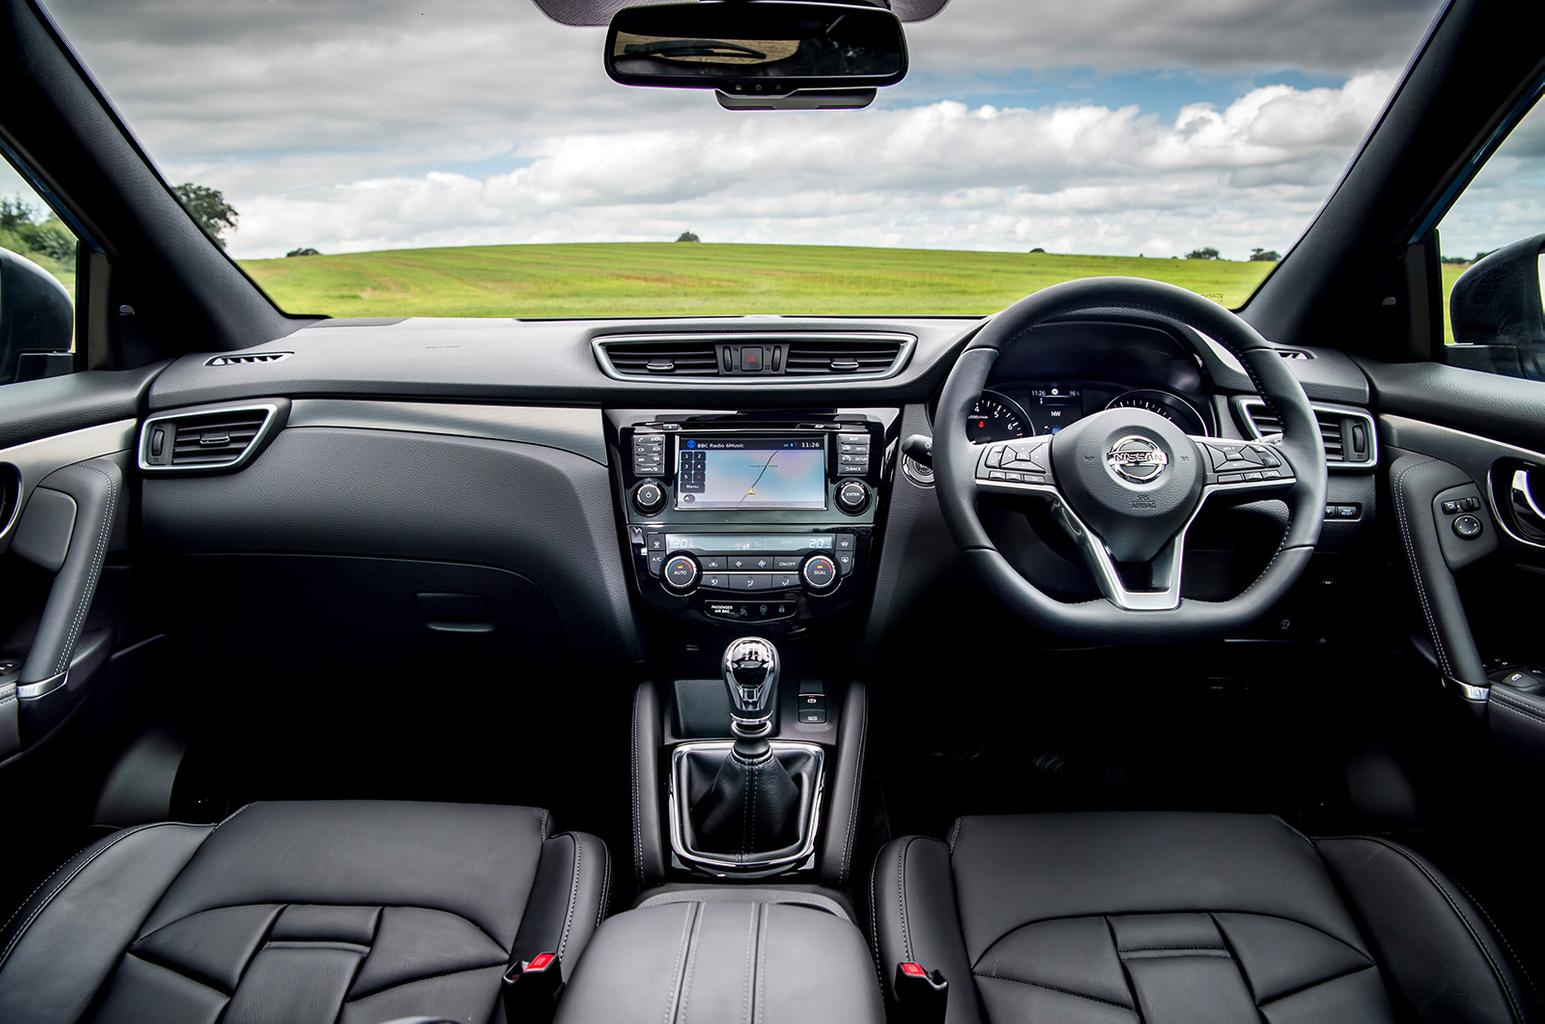 How to spec a Nissan Qashqai